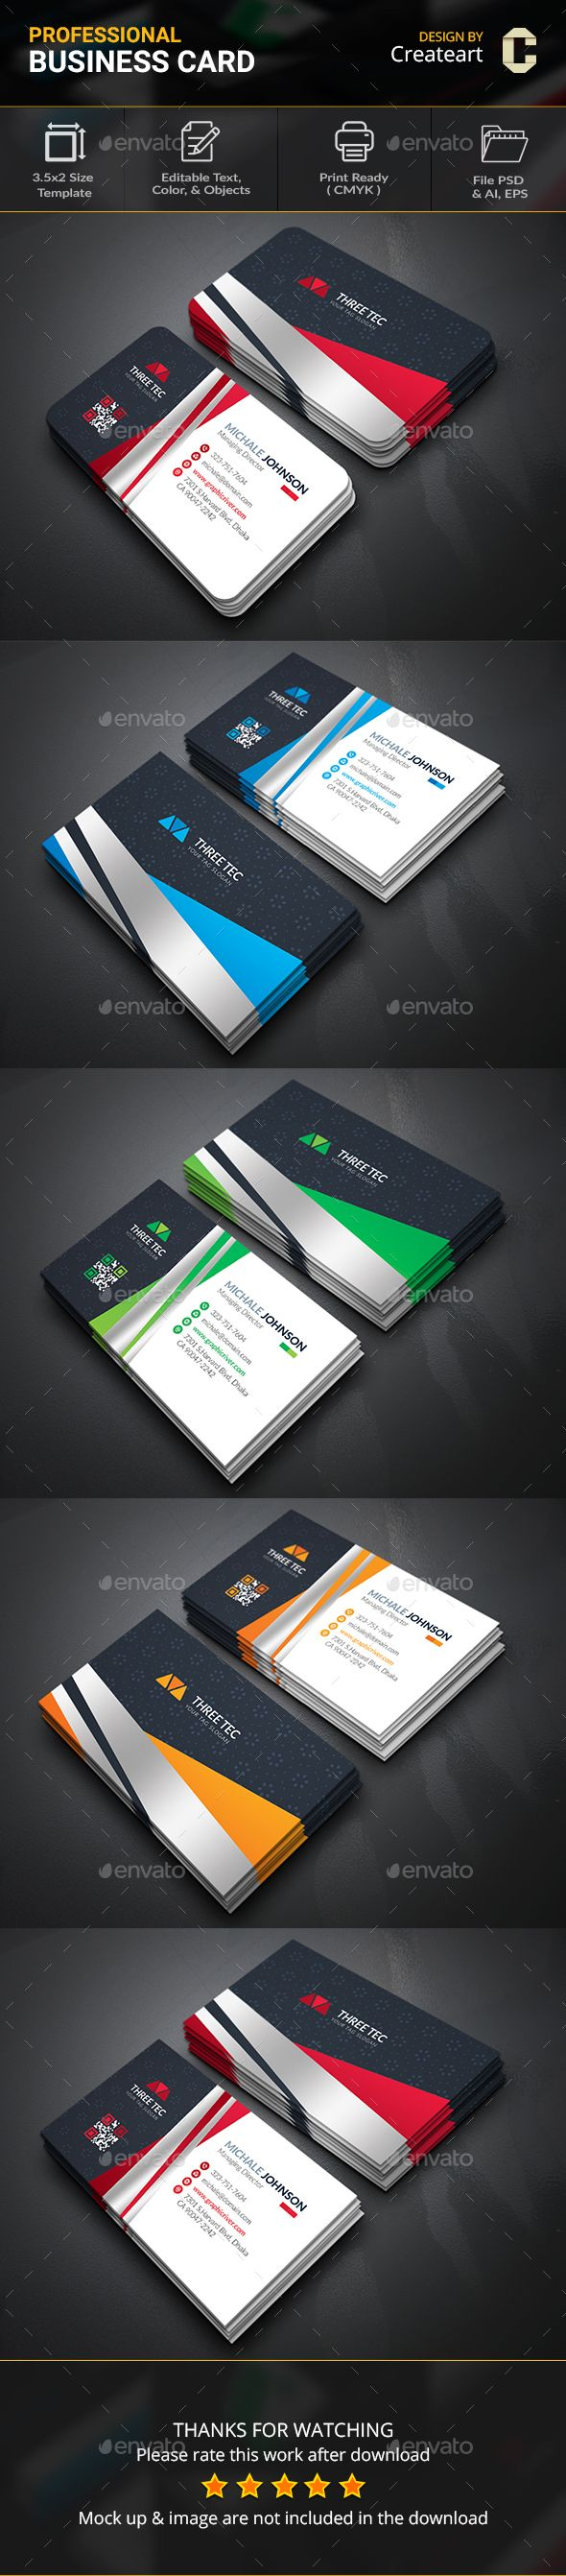 Silver Corporate Business Card - #Business Cards Print Templates Download here:   https://graphicriver.net/item/silver-corporate-business-card/20223648?ref=suz_562geid